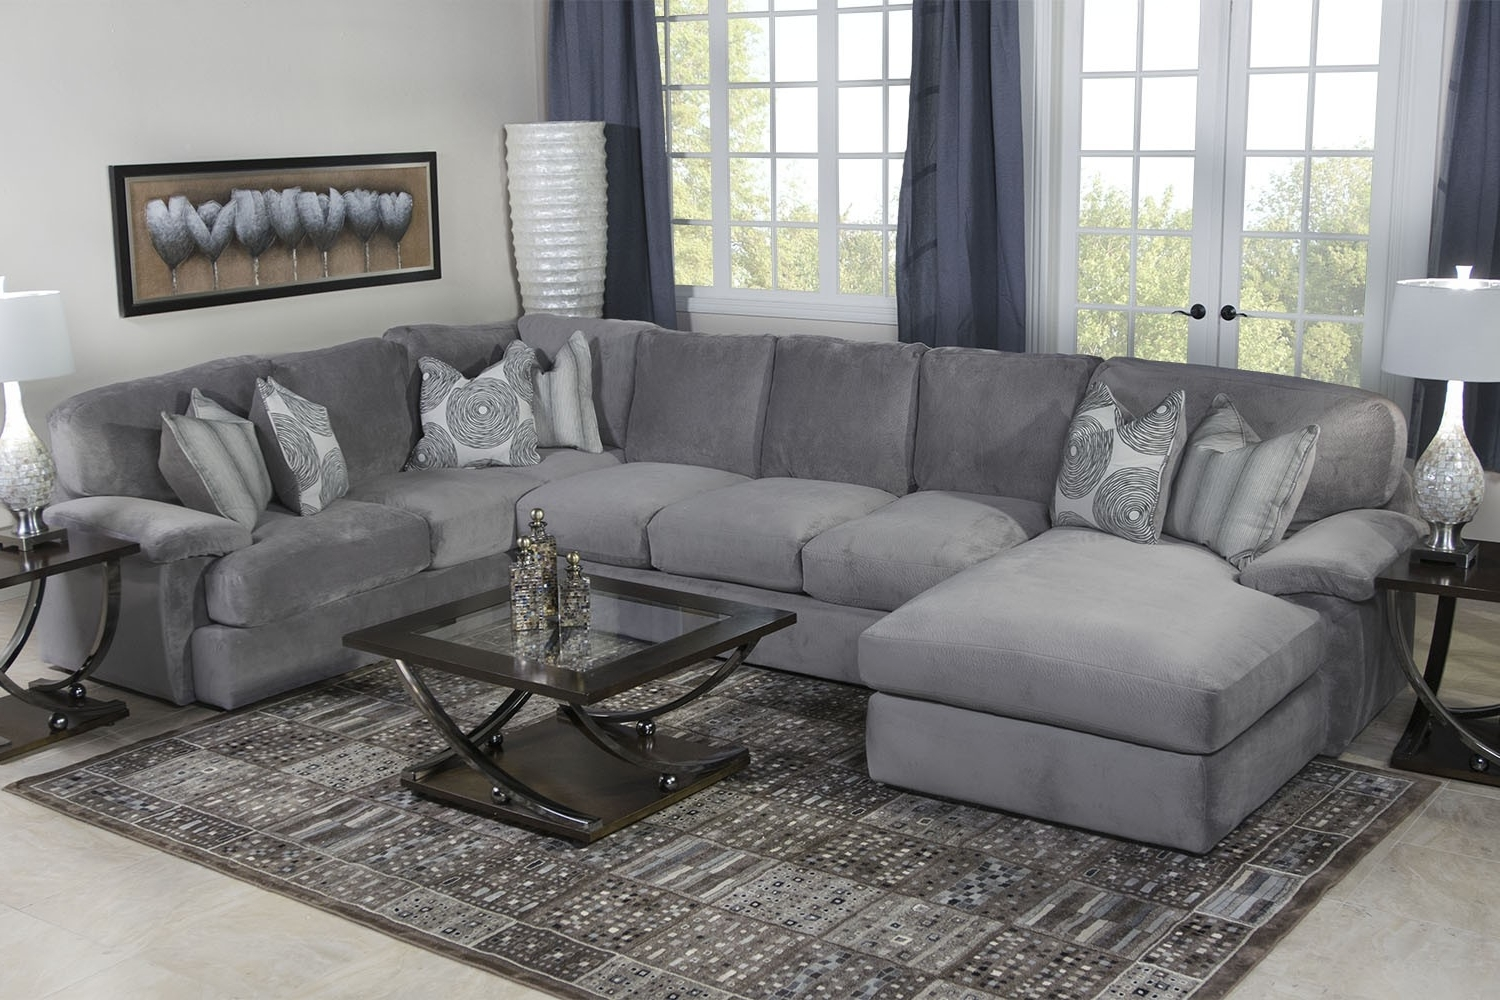 Latest Key West Sectional Living Room In Gray Media Image (View 3 of 20)